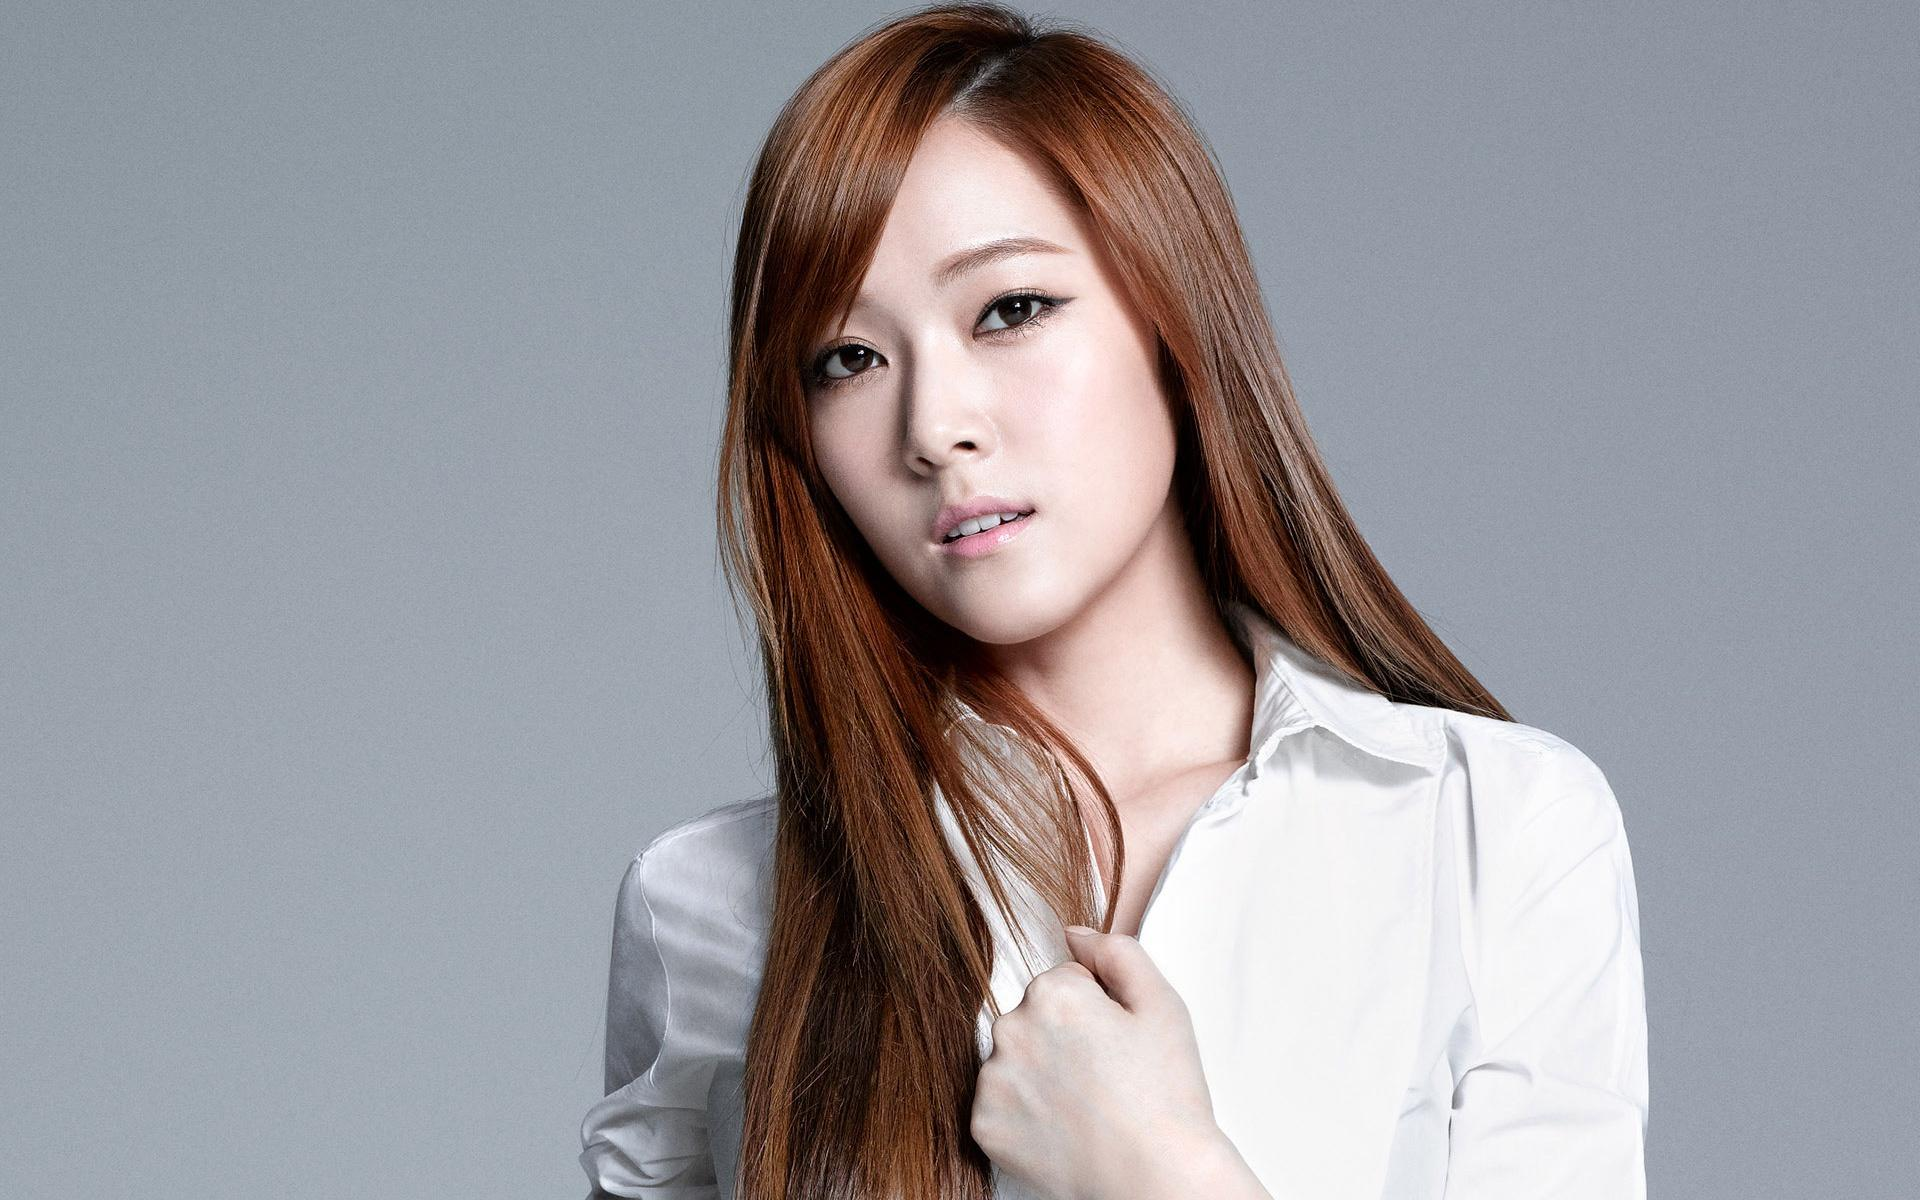 how to write jessica in korean